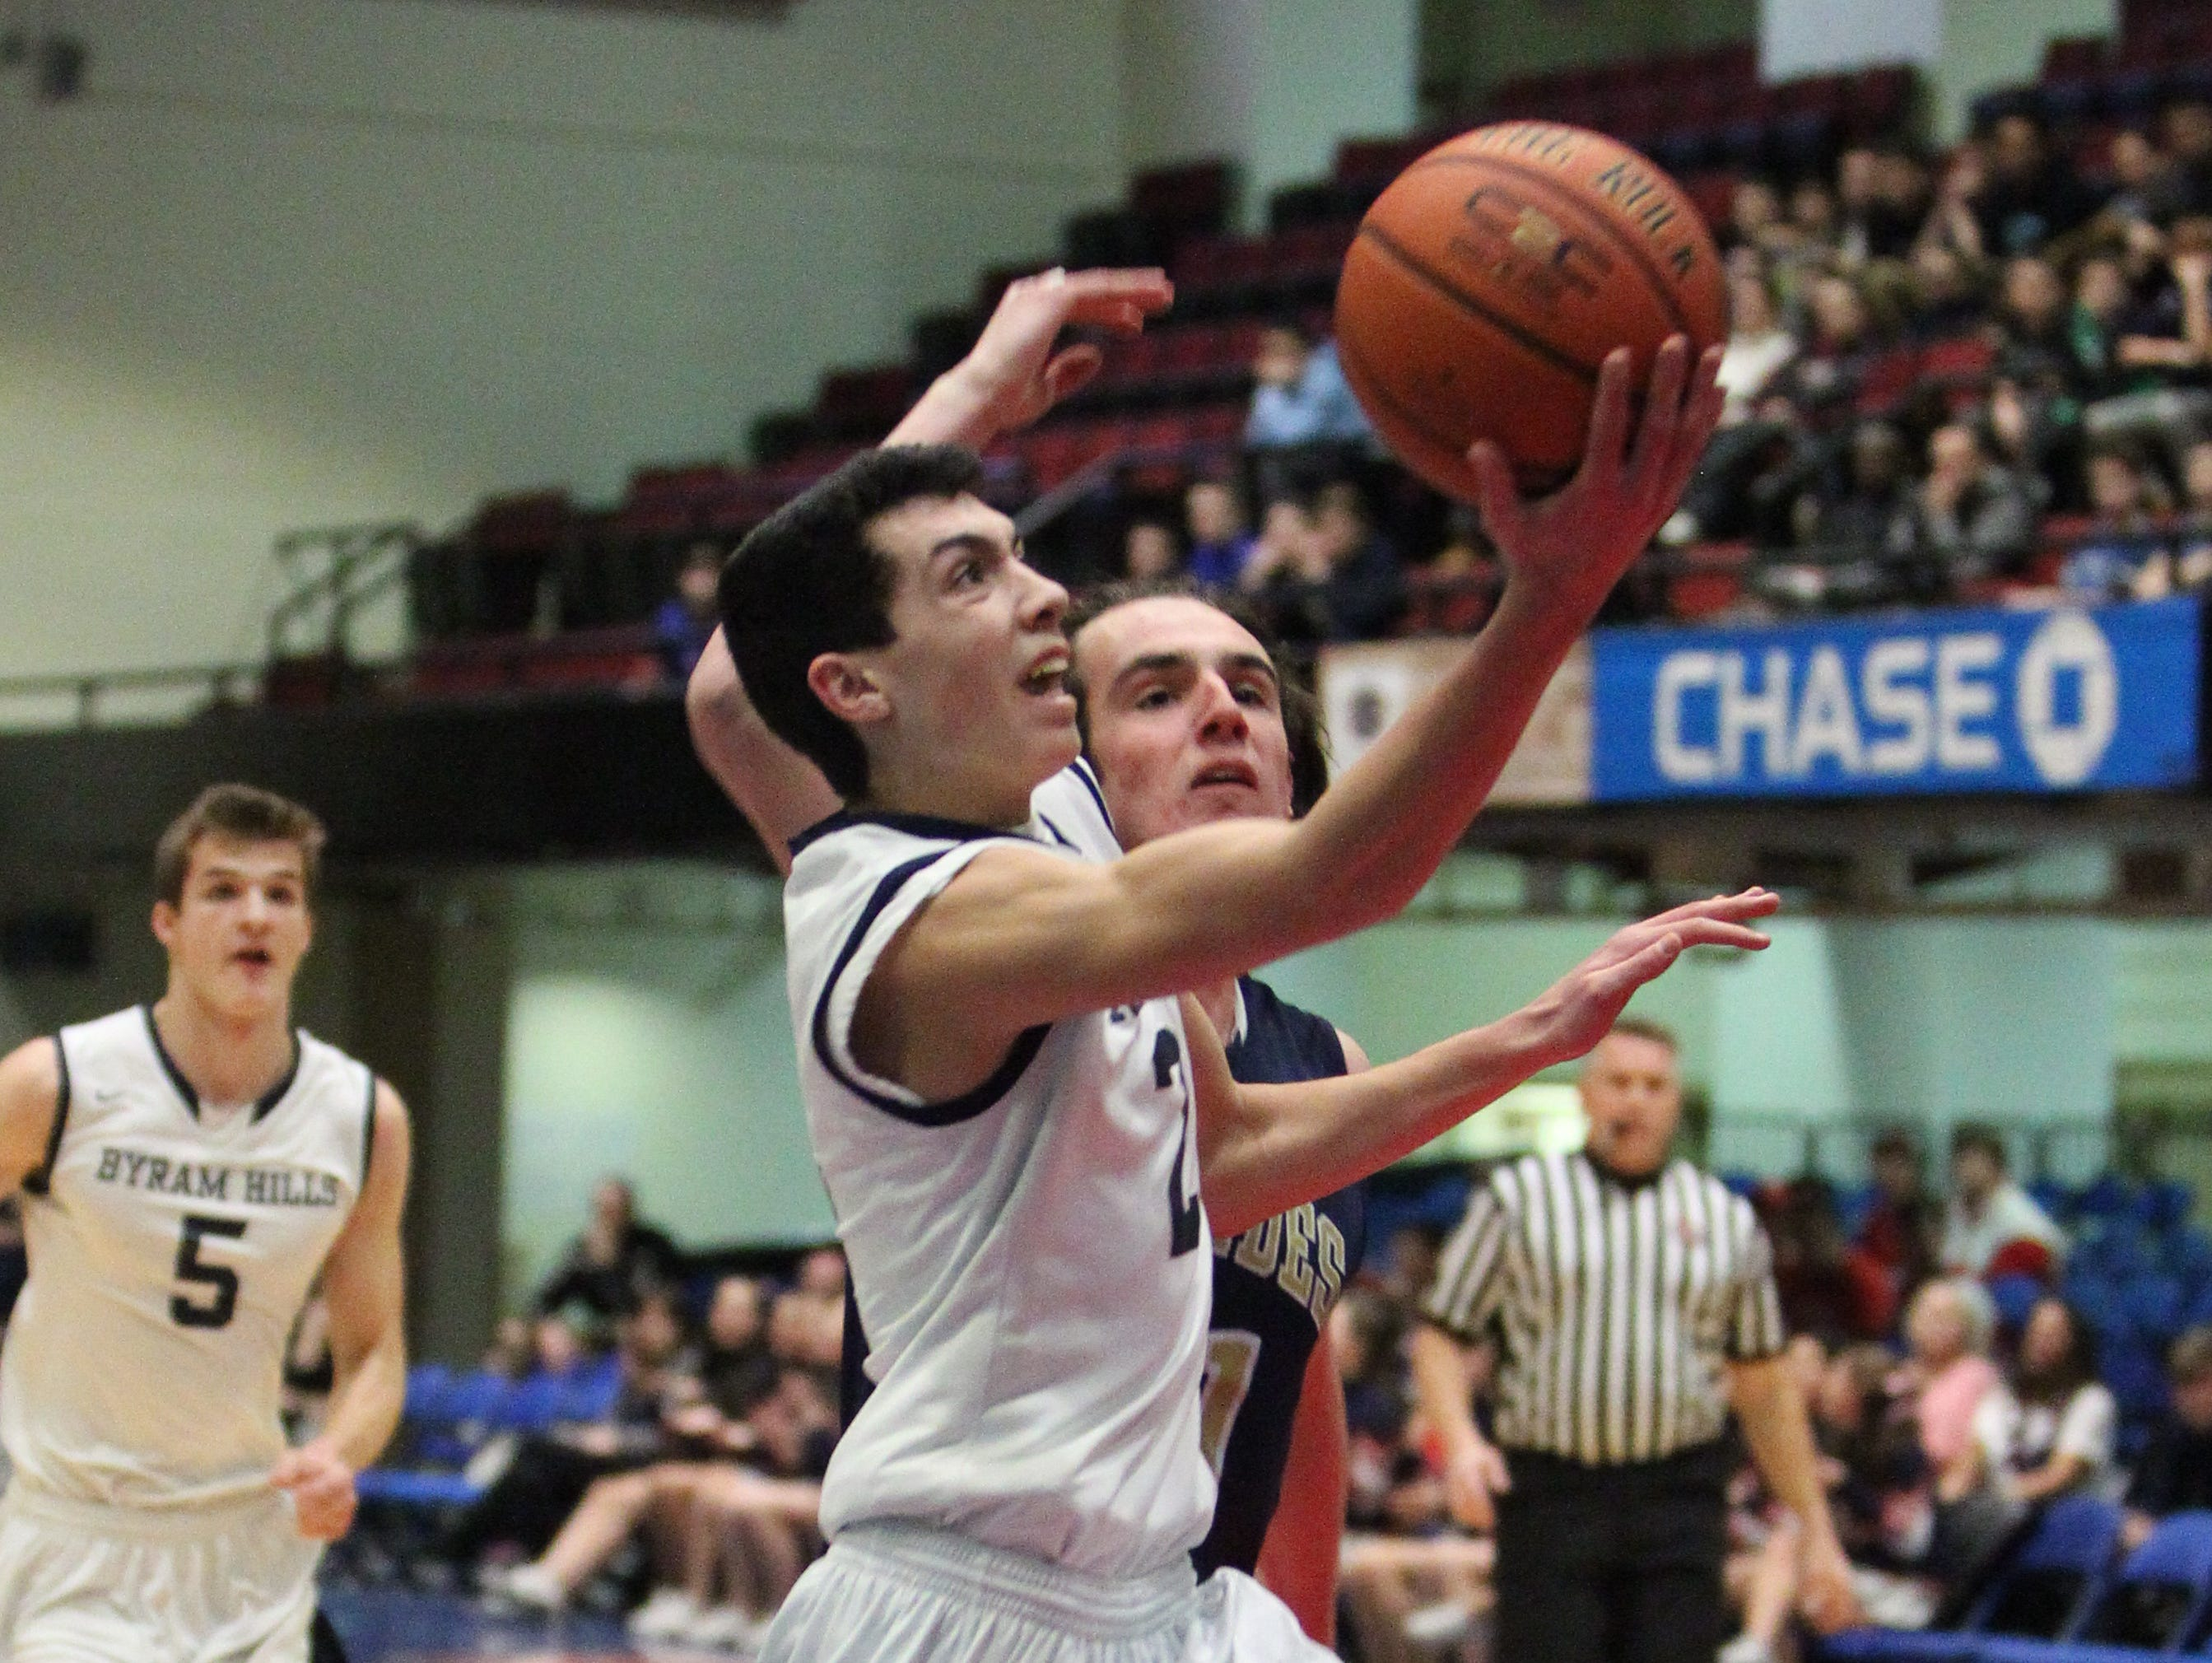 Byram Hills' Skylar Sinon drives past Lourdes' Jeremy Waters during their Section 1 Class A semifinal at the Westchester County Center Feb. 22, 2016.